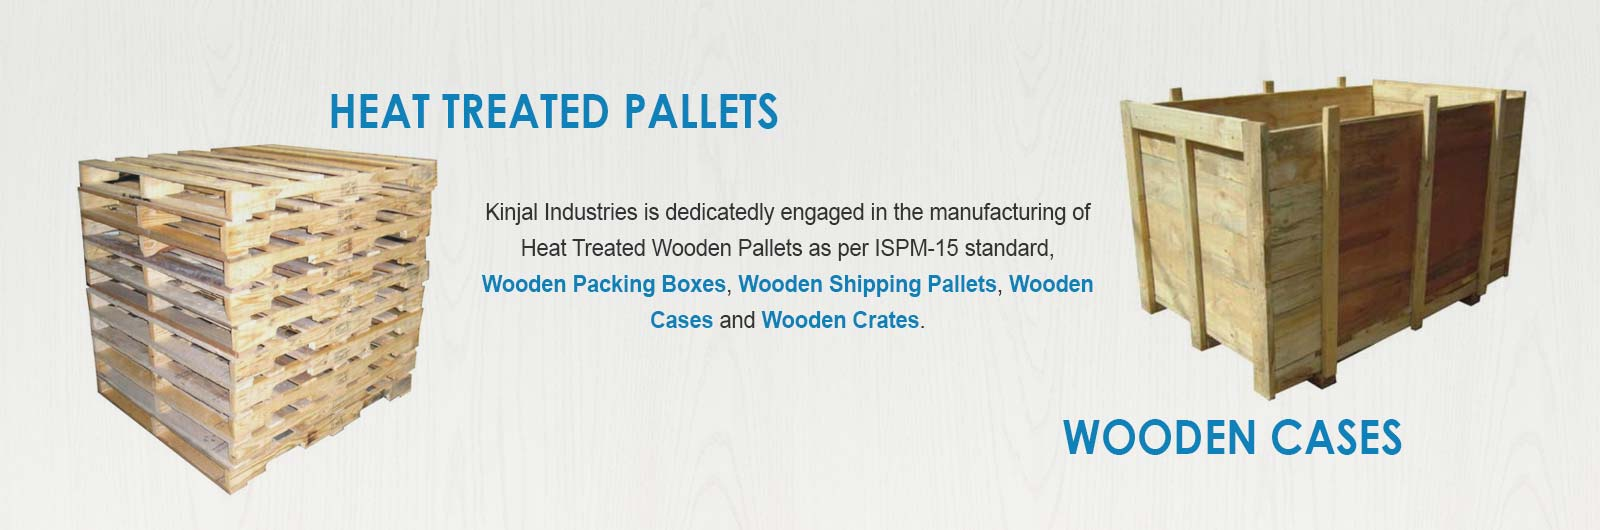 Heat Treated Pallets, Wooden Cases Manufacturers in Vadodara